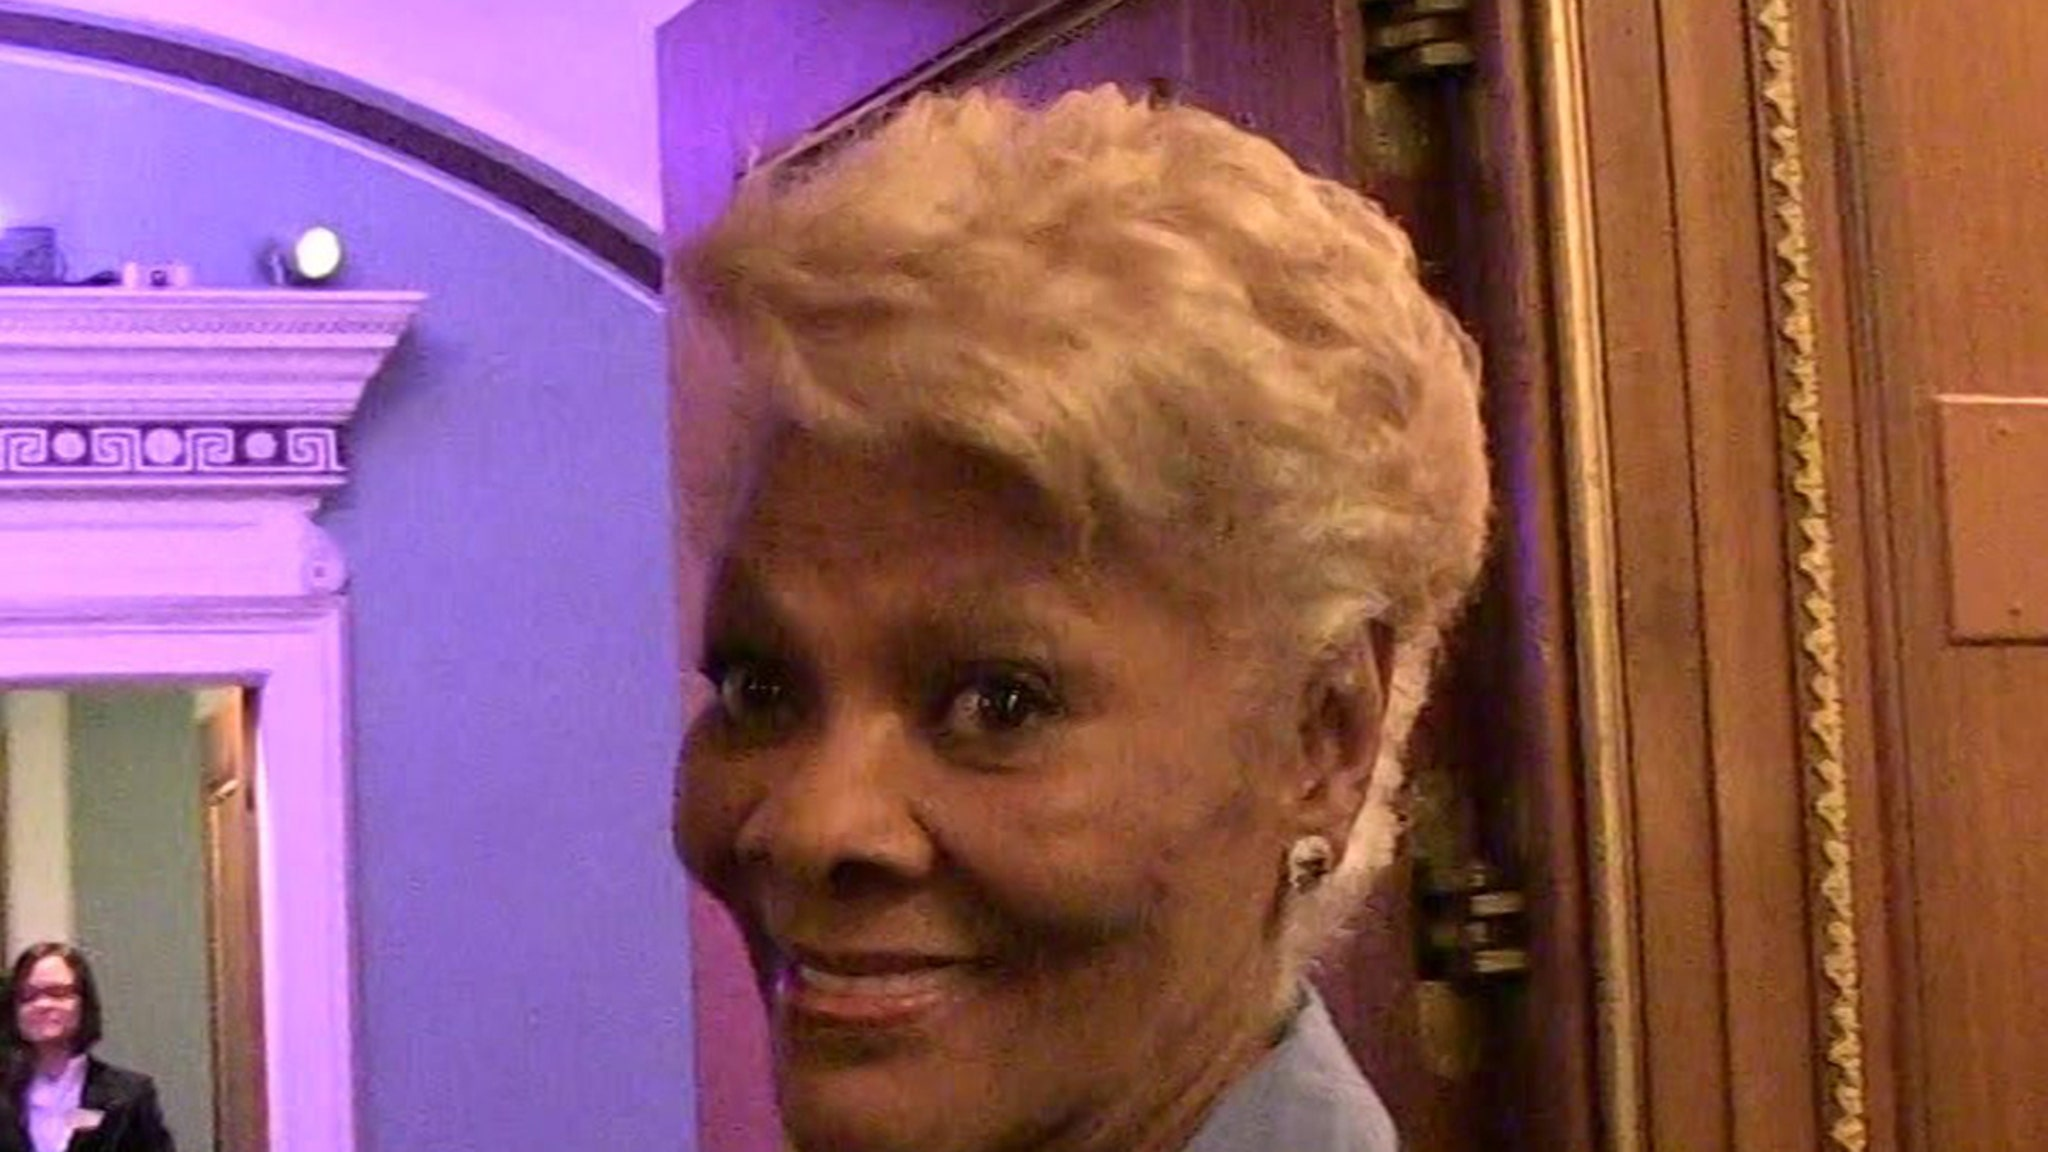 Dionne Warwick Partners with Son to Open Sound Bath Center in Venice